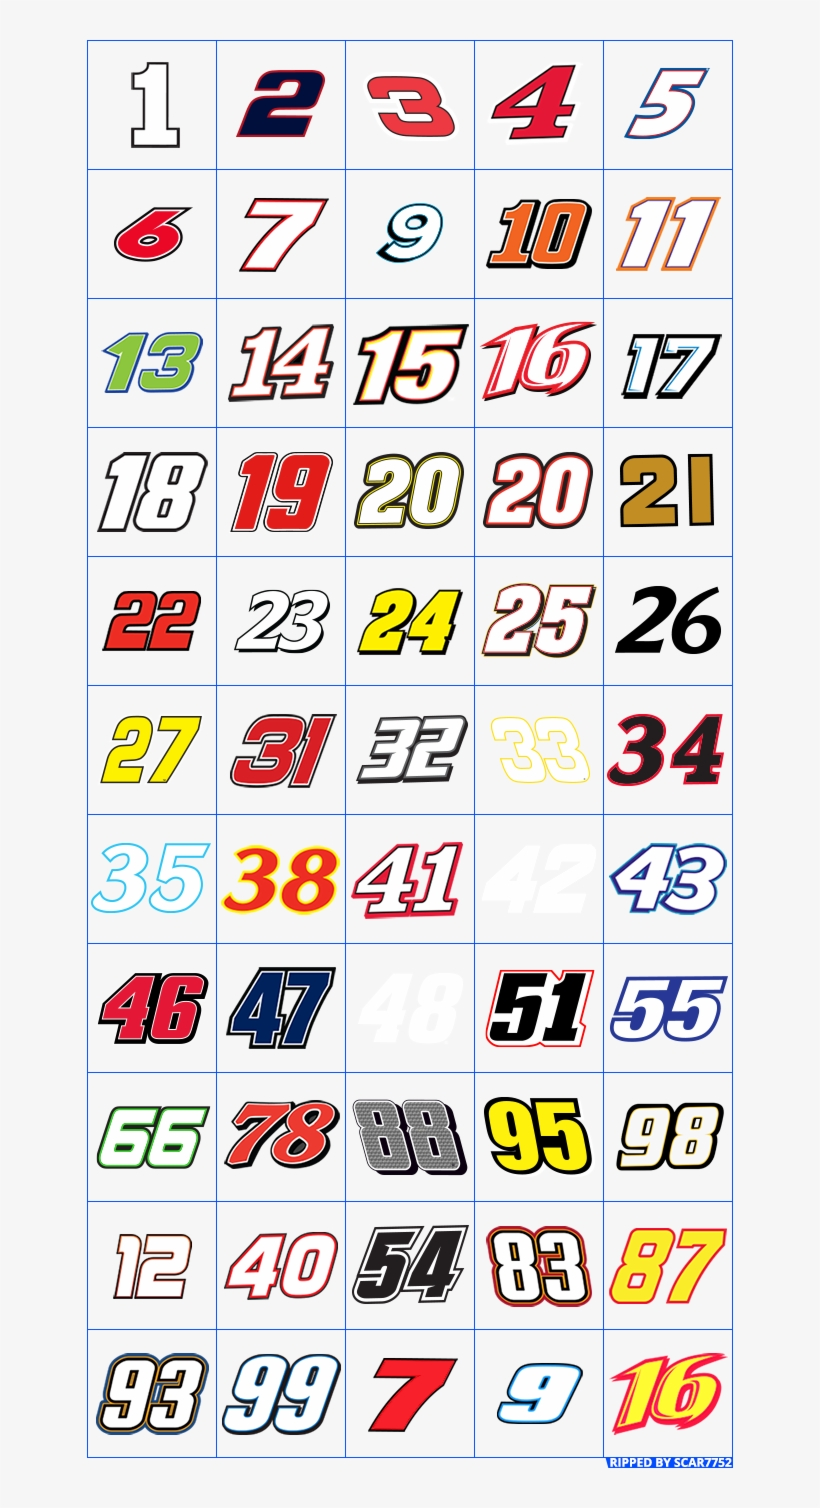 Nascar Numbers Png.